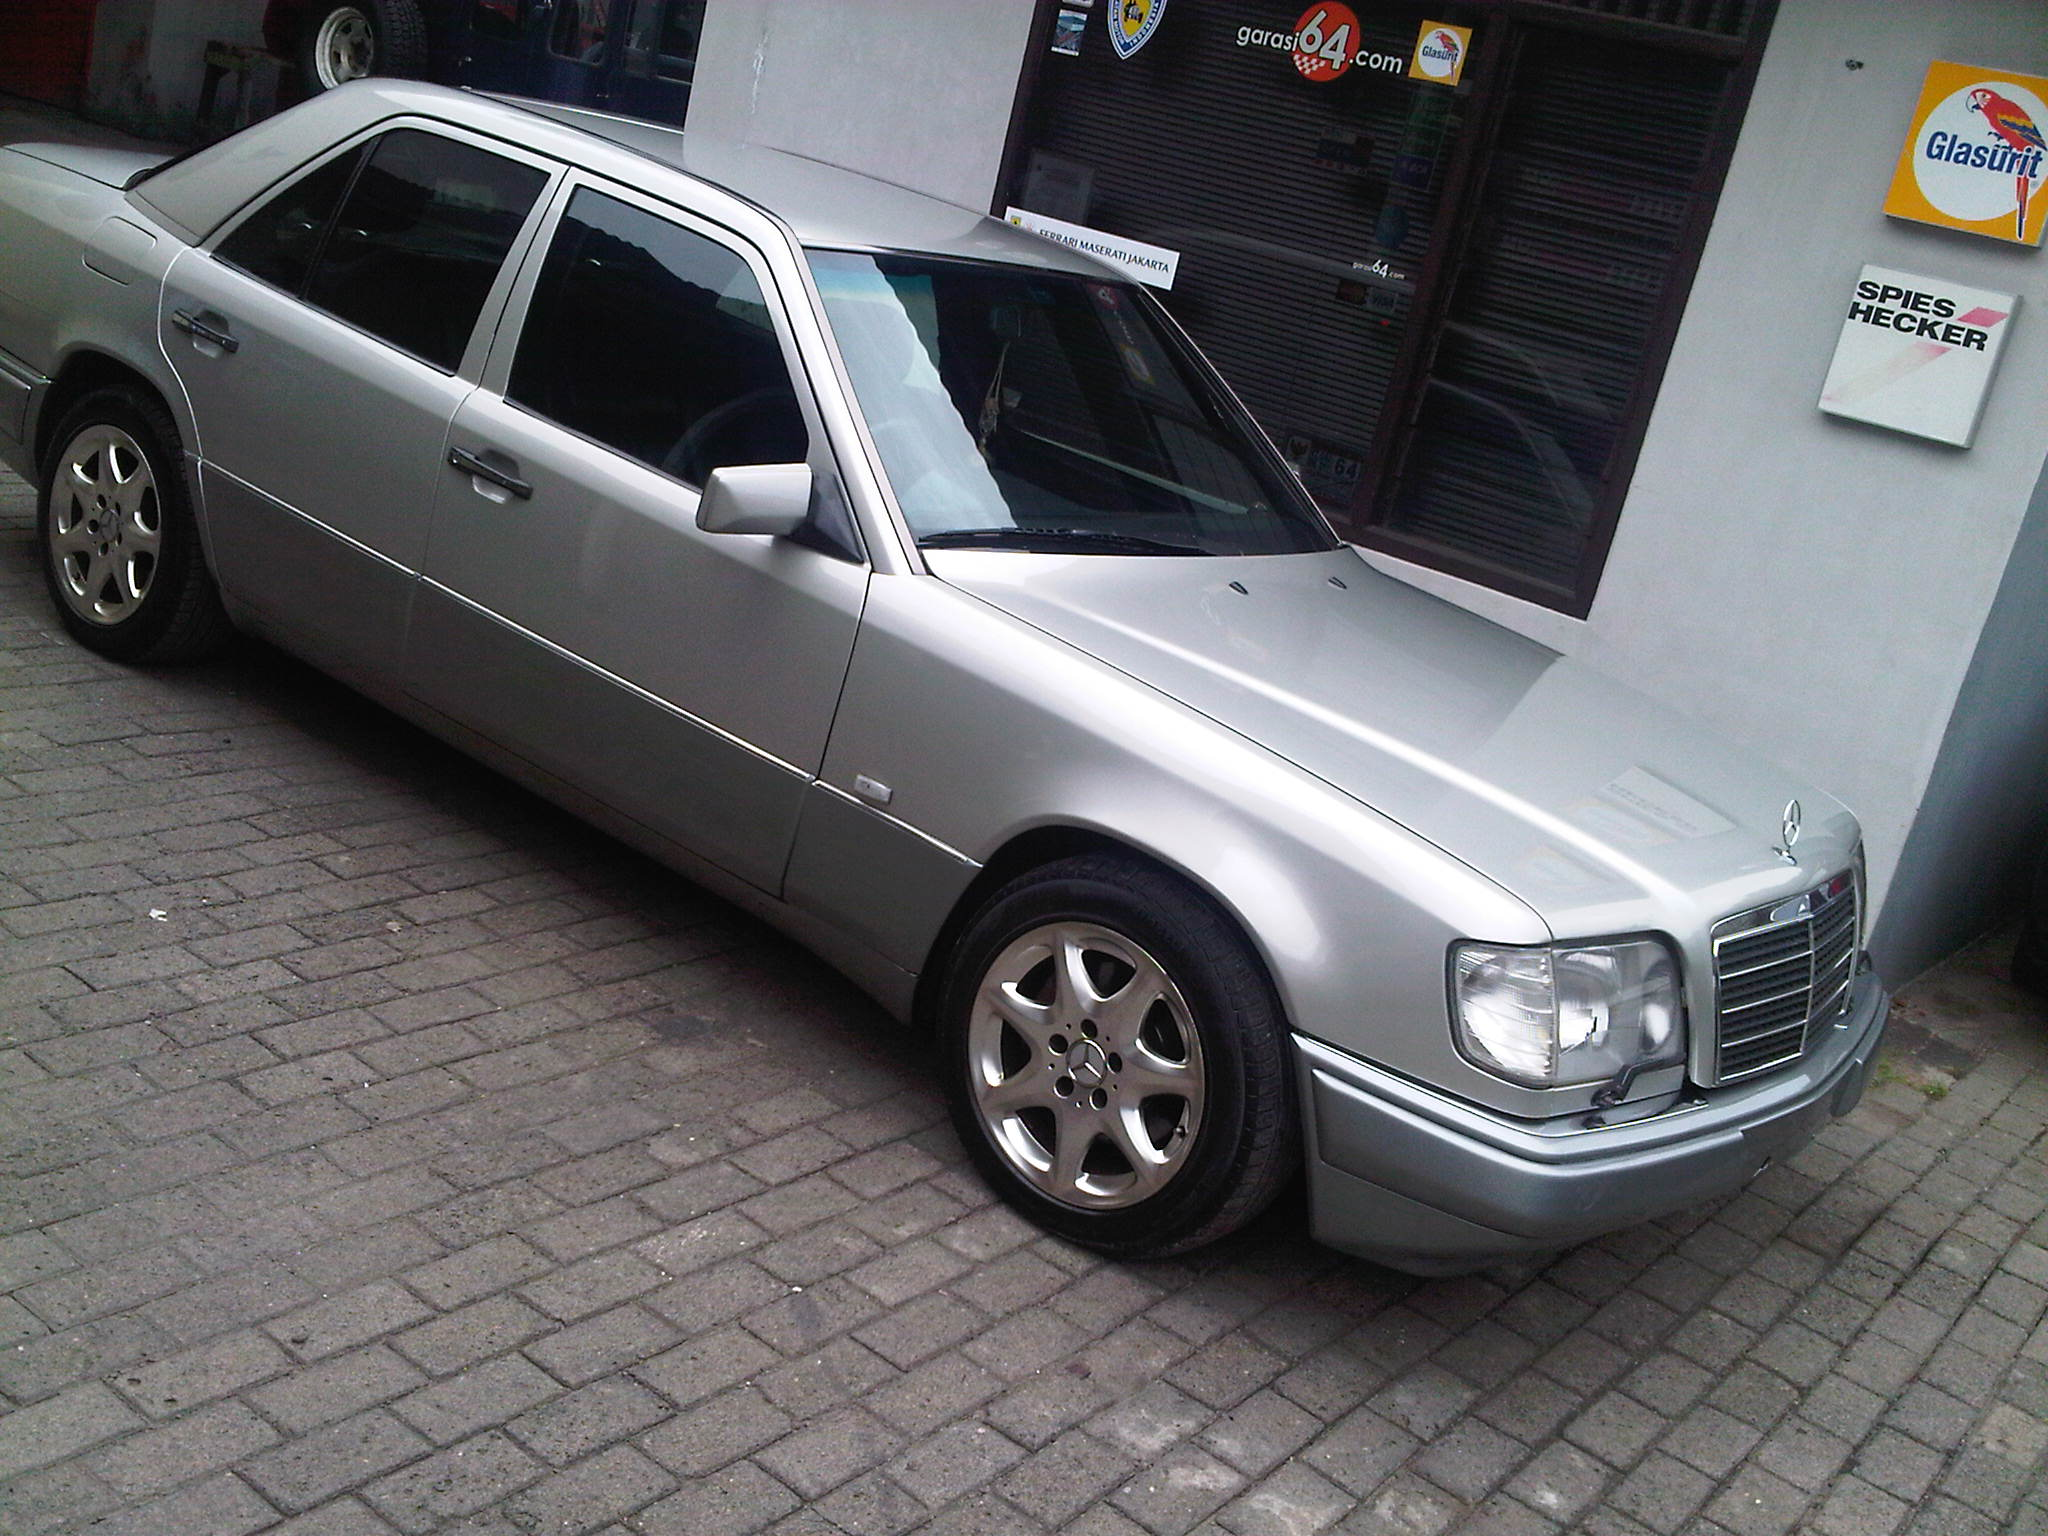 1996 mercedes benz e320 w124 garasi 64 for Mercedes benz creator